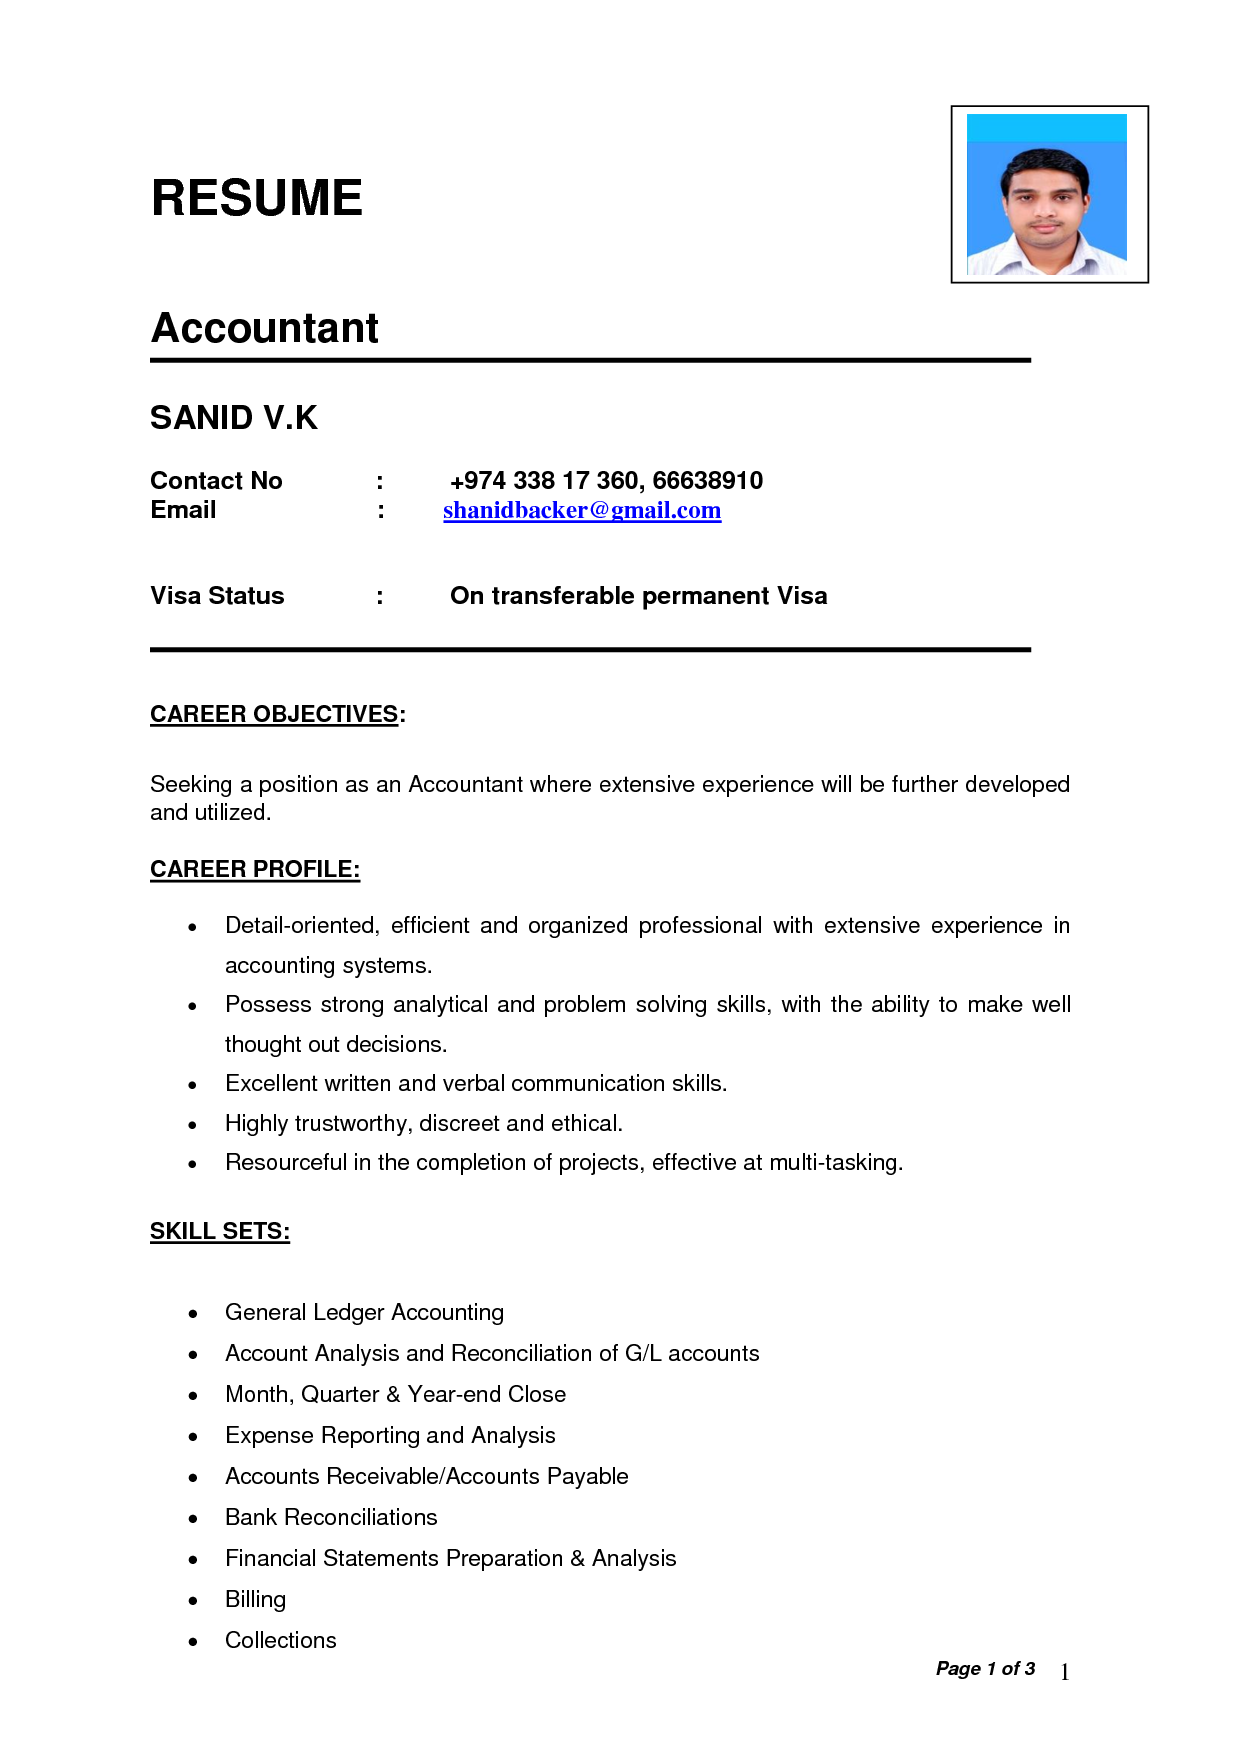 Resume Format Used In India